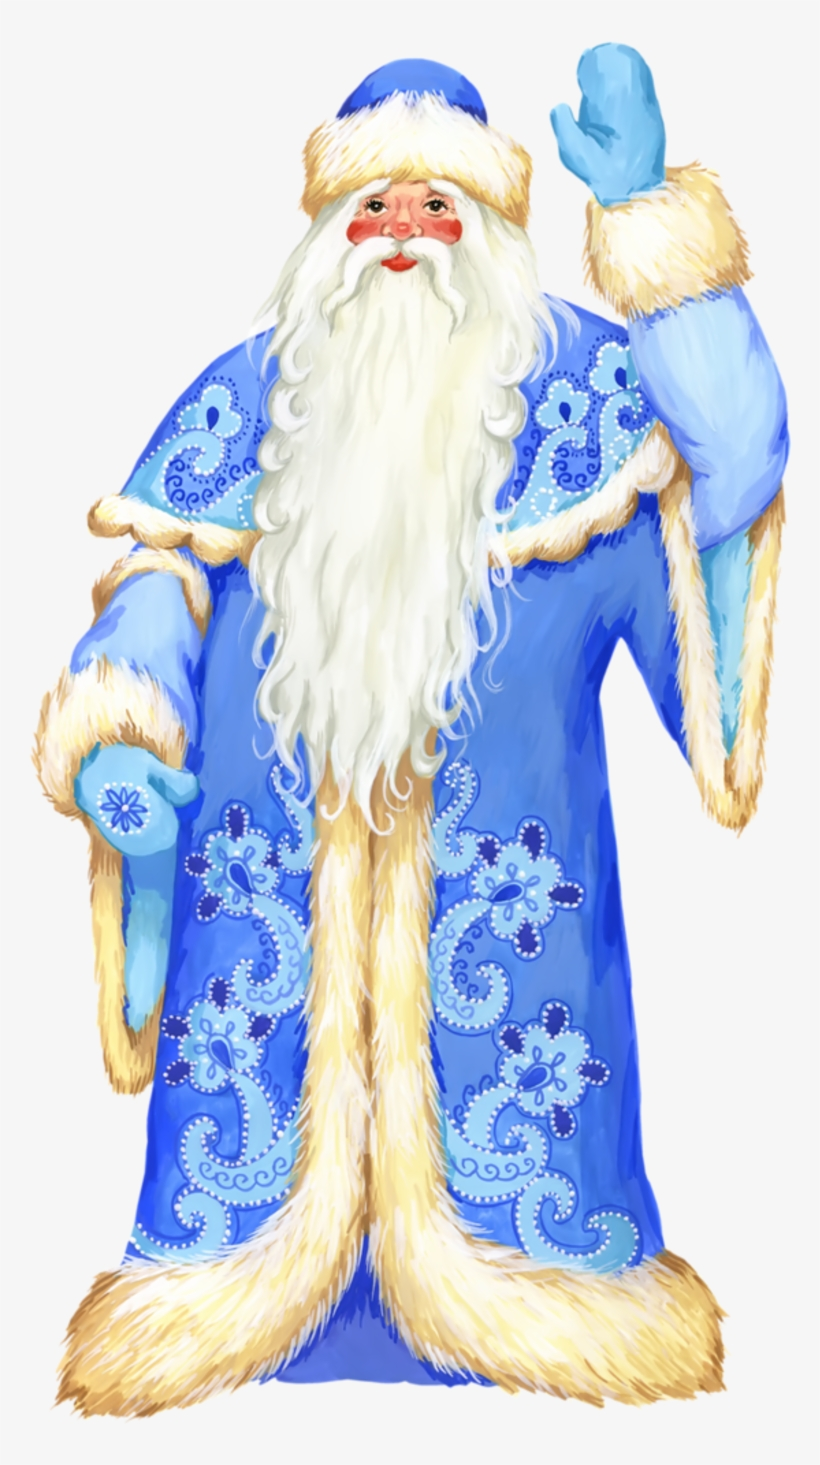 Pere Noel Santa Claus Blue Clipart Transparent Png 800x1400 Free Download On Nicepng